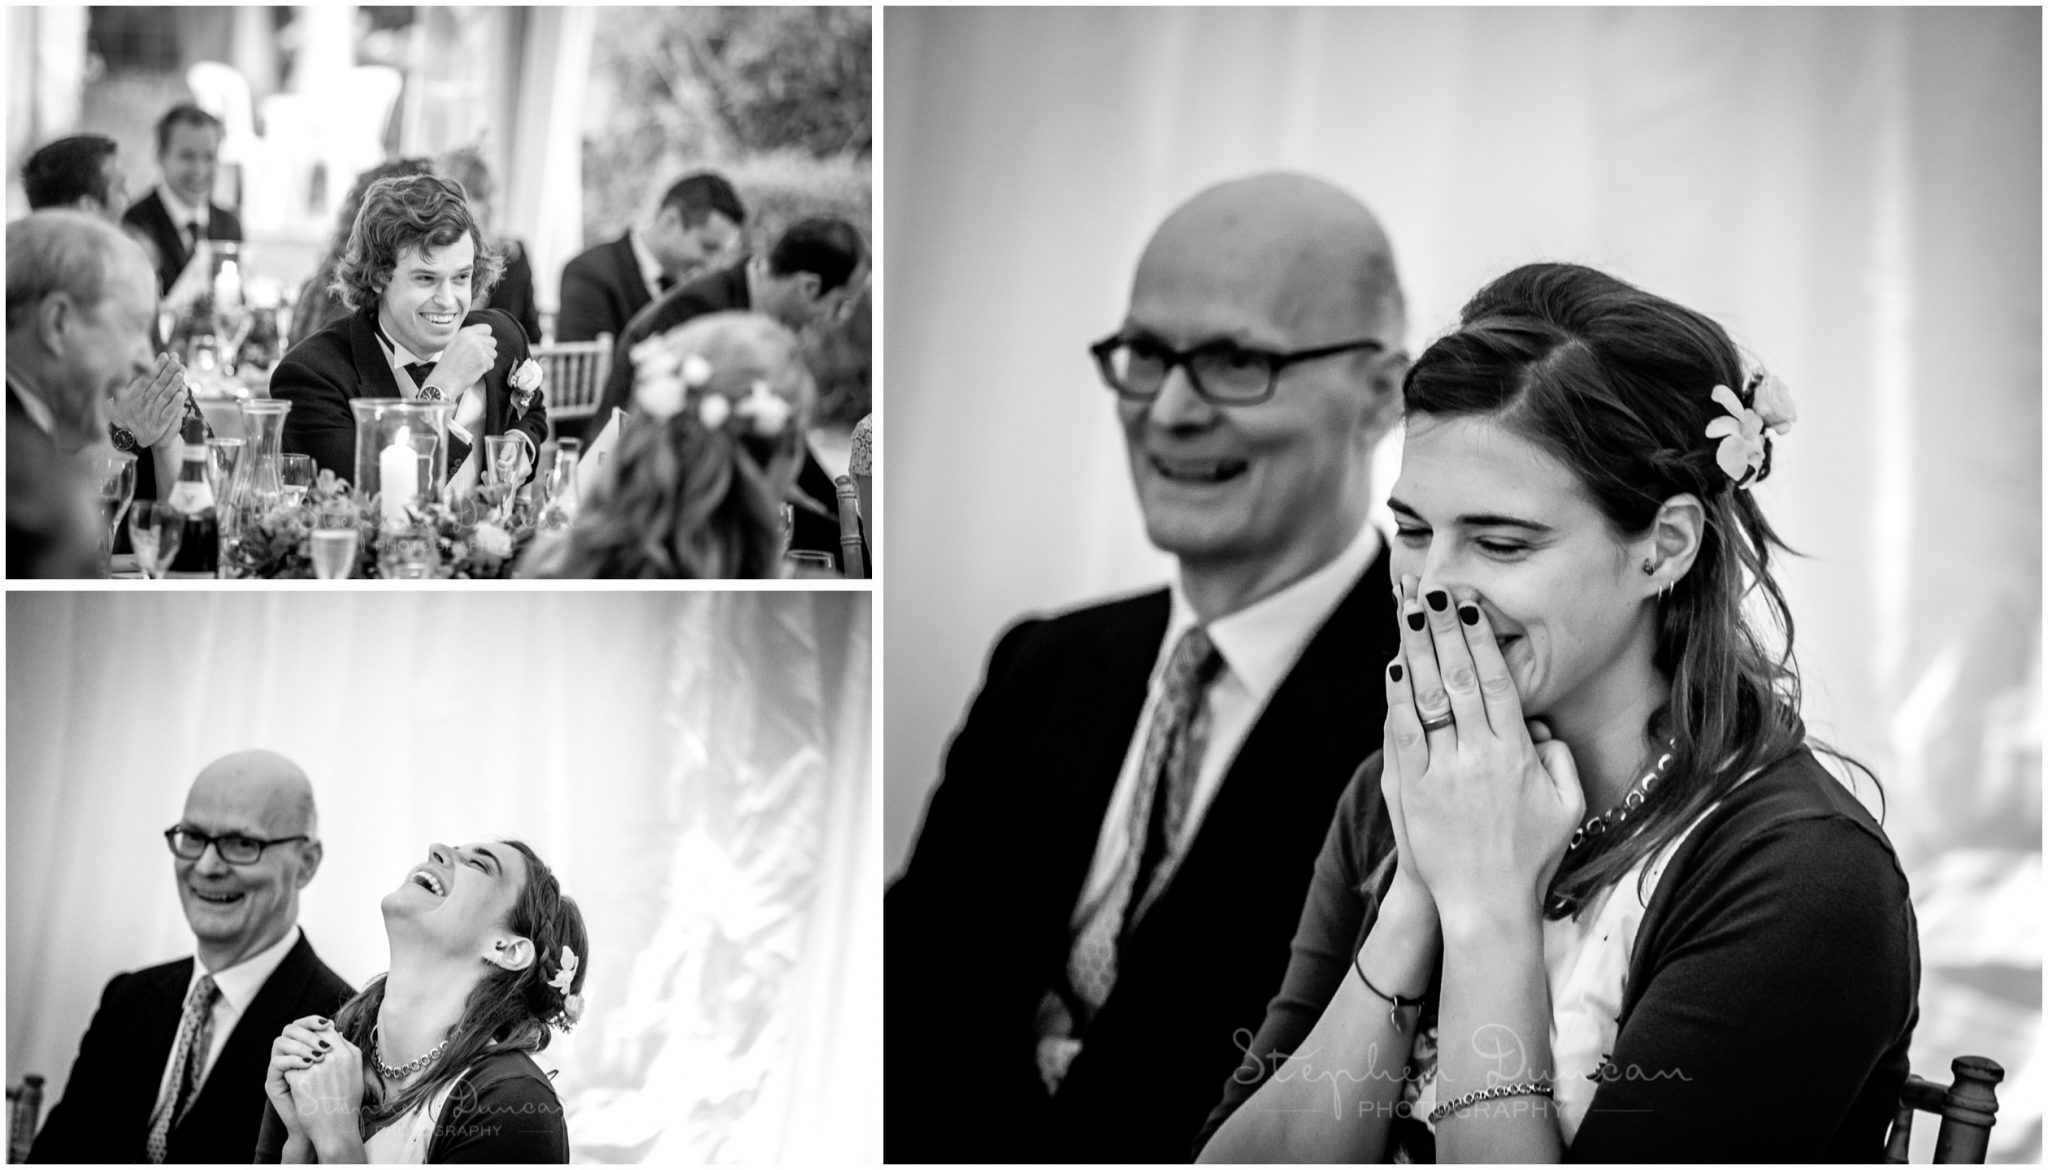 Lymington wedding photography reactions to speeches